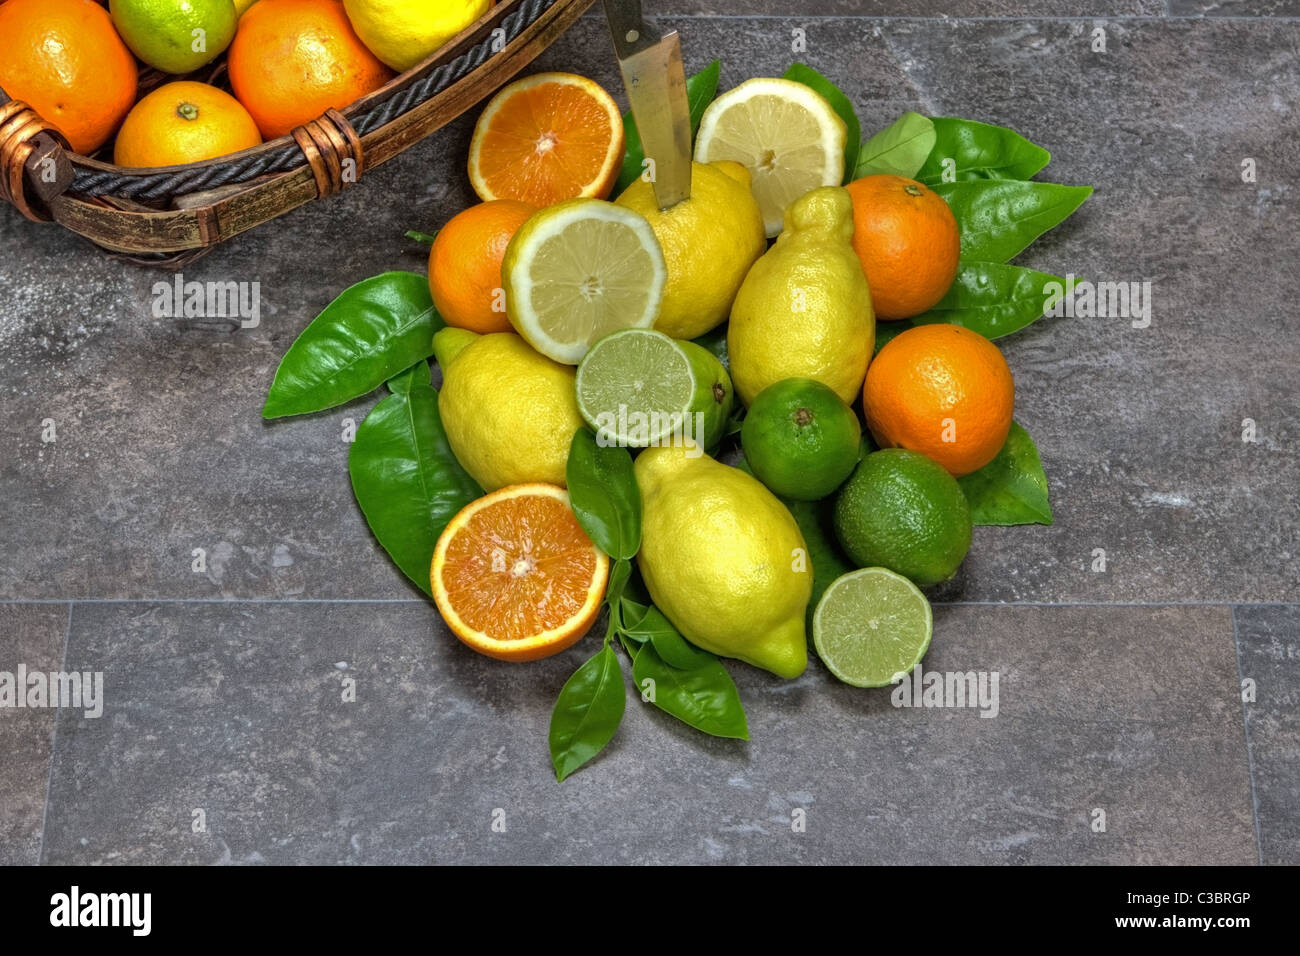 assortment with citrus fruits in a basket - Stock Image